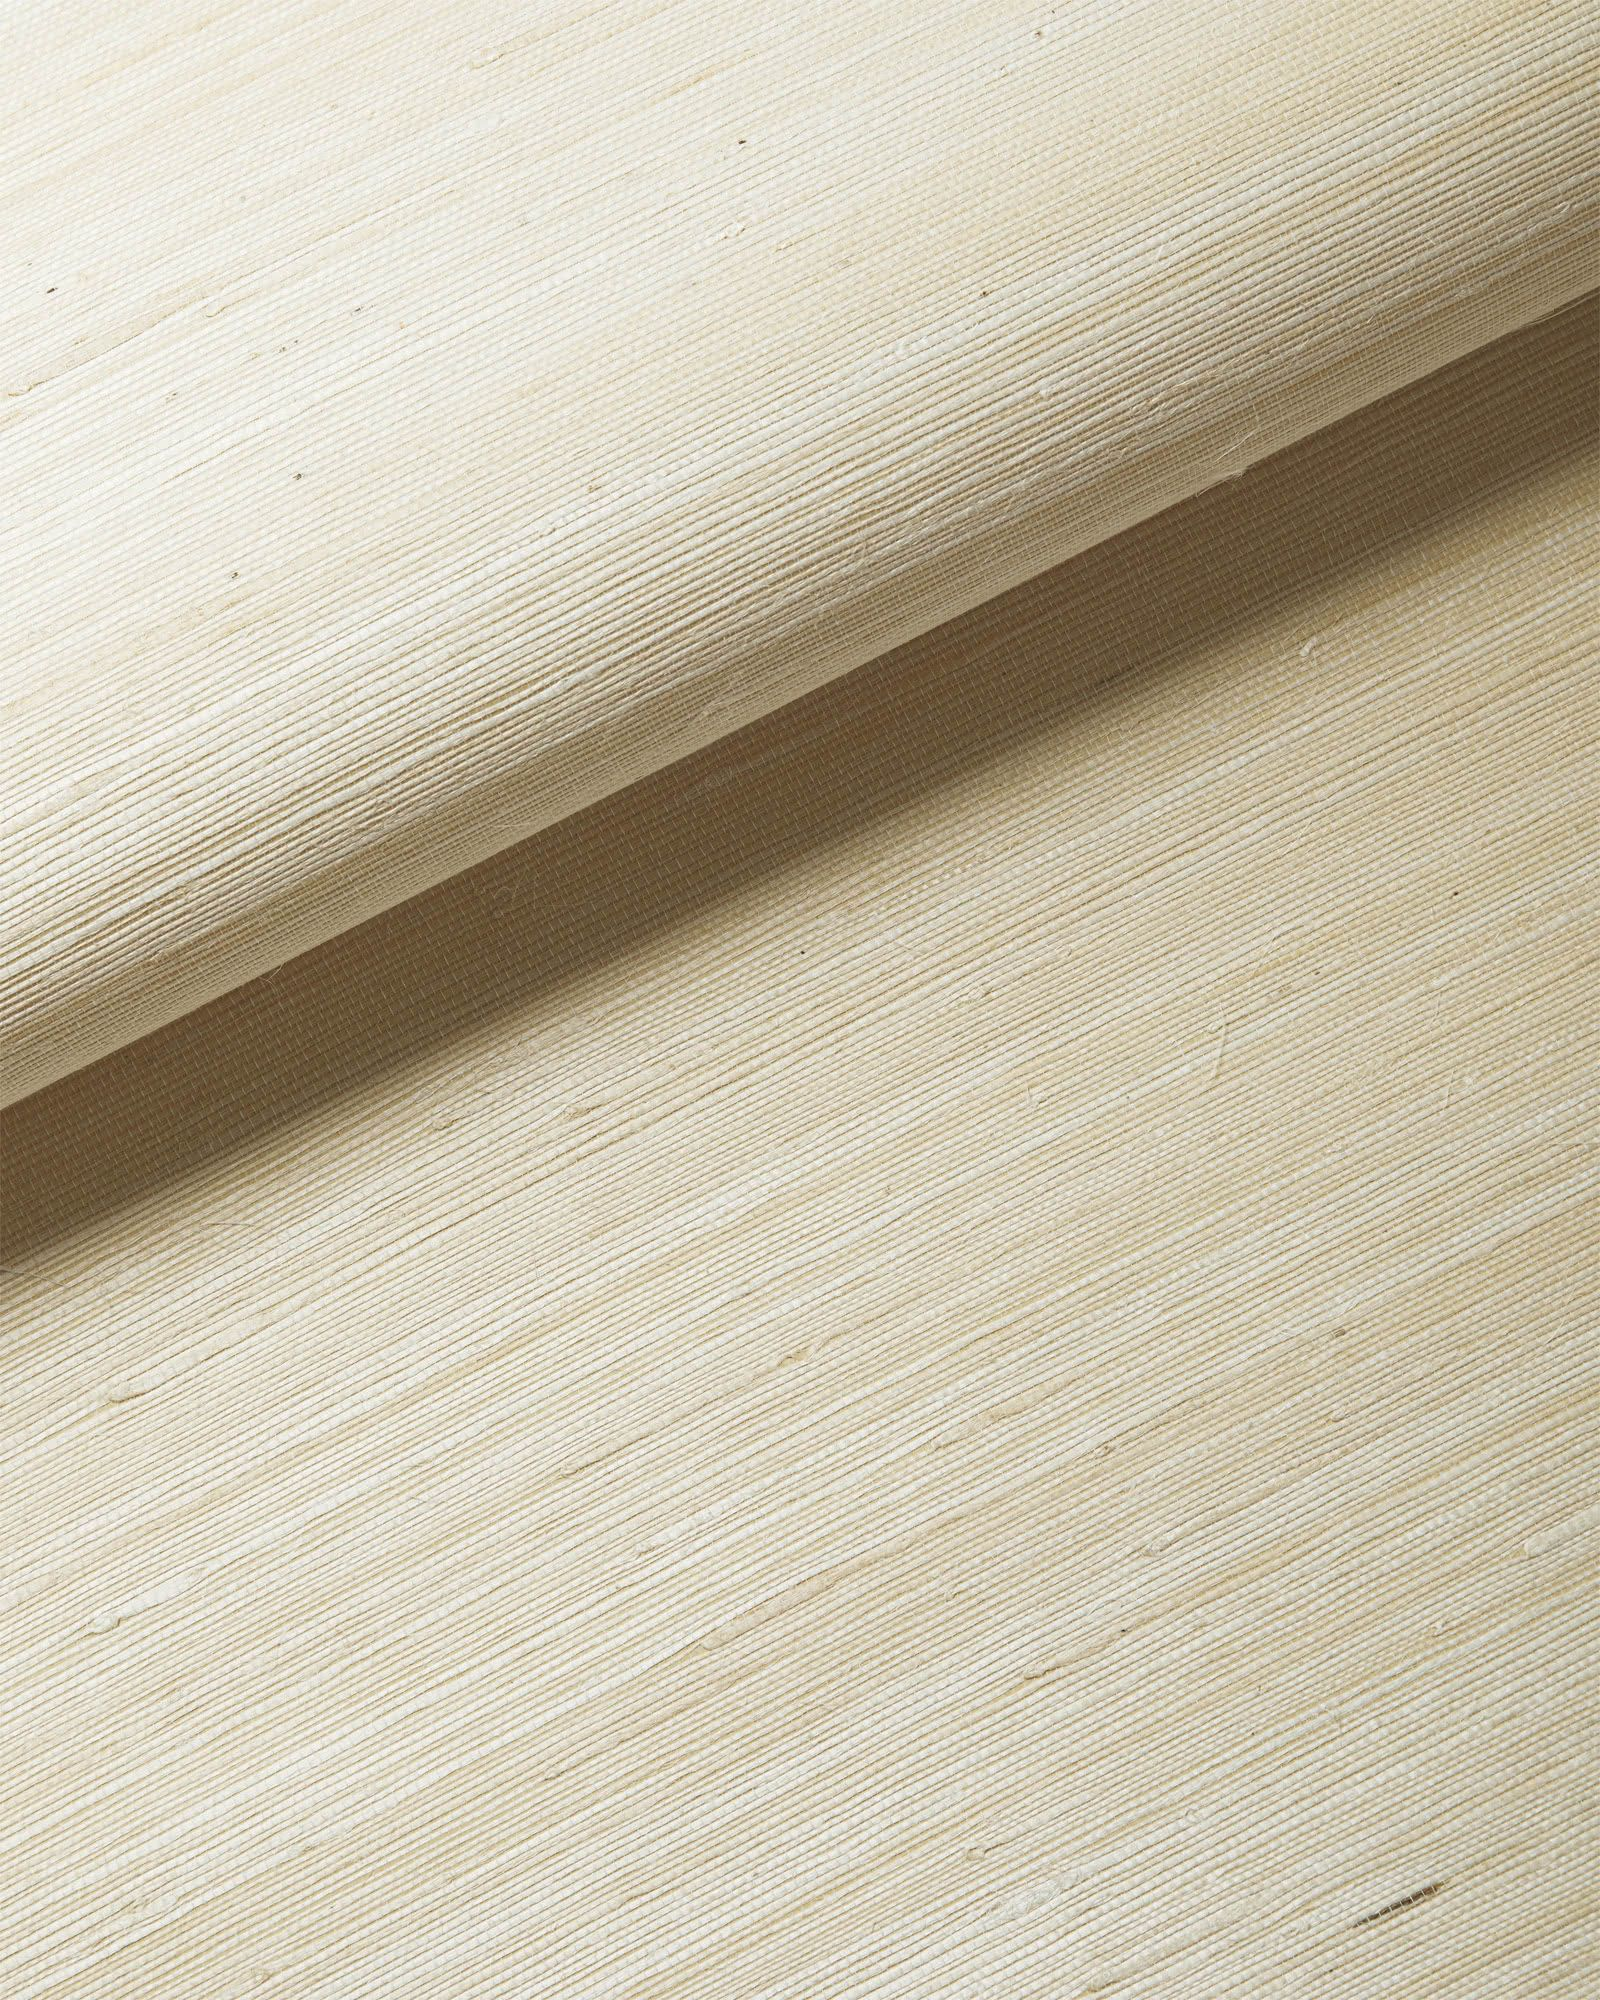 Grasscloth Wallcovering Grasscloth, Wall coverings